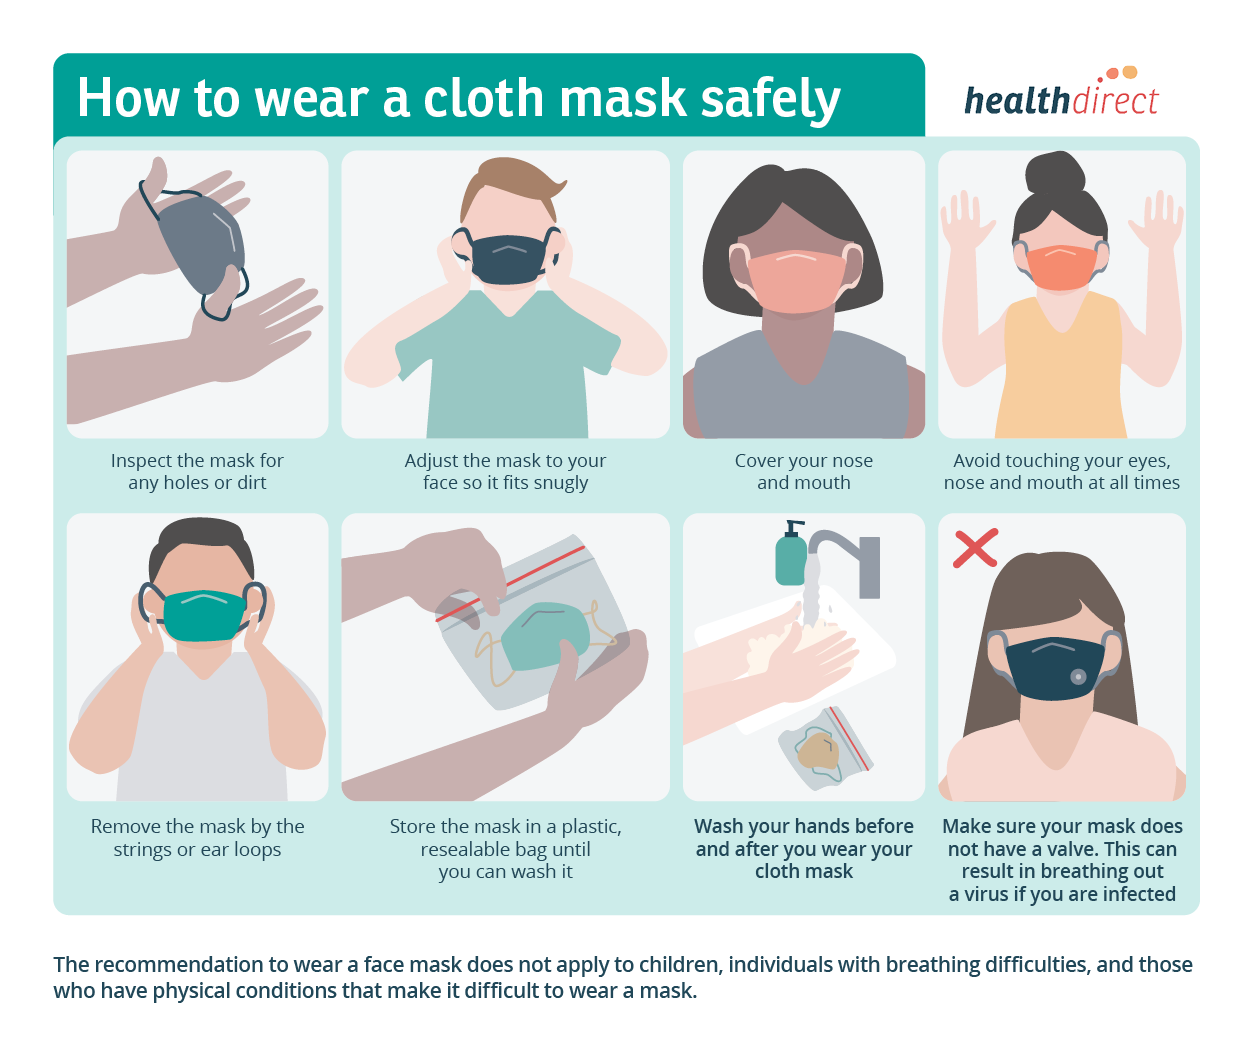 Click to check how to wear a cloth mask safely